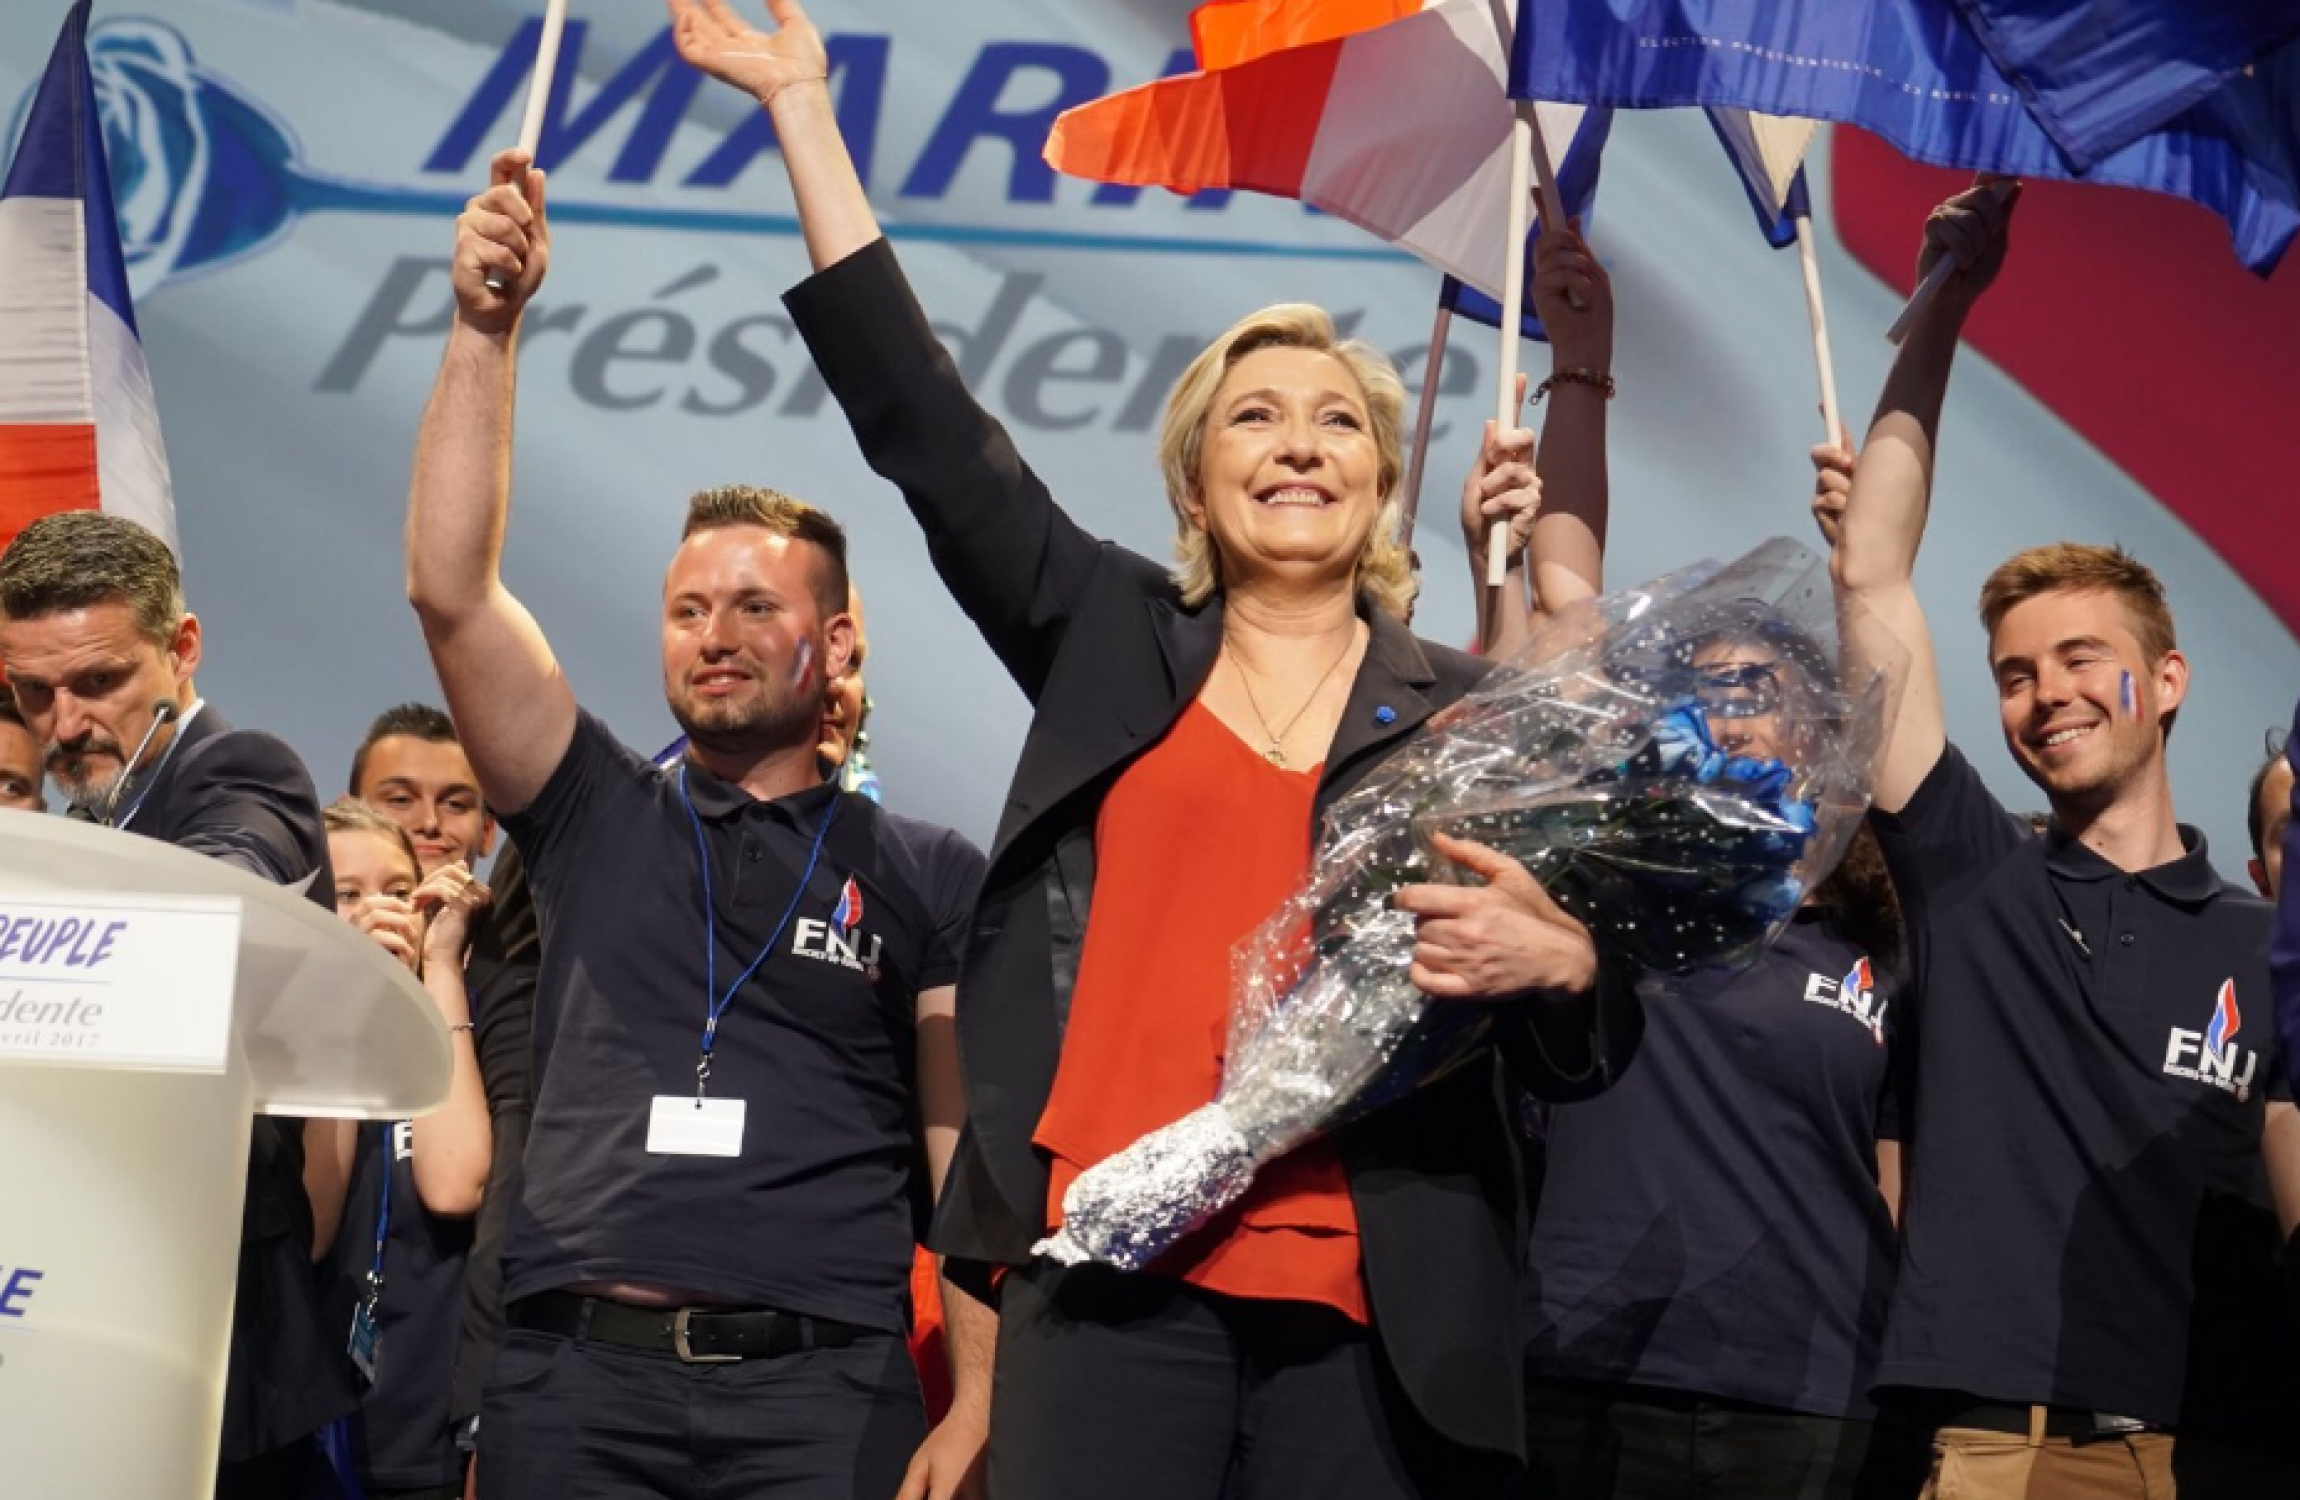 Marine Le Pen Pledges To Suspend Immigration If Wins Elections